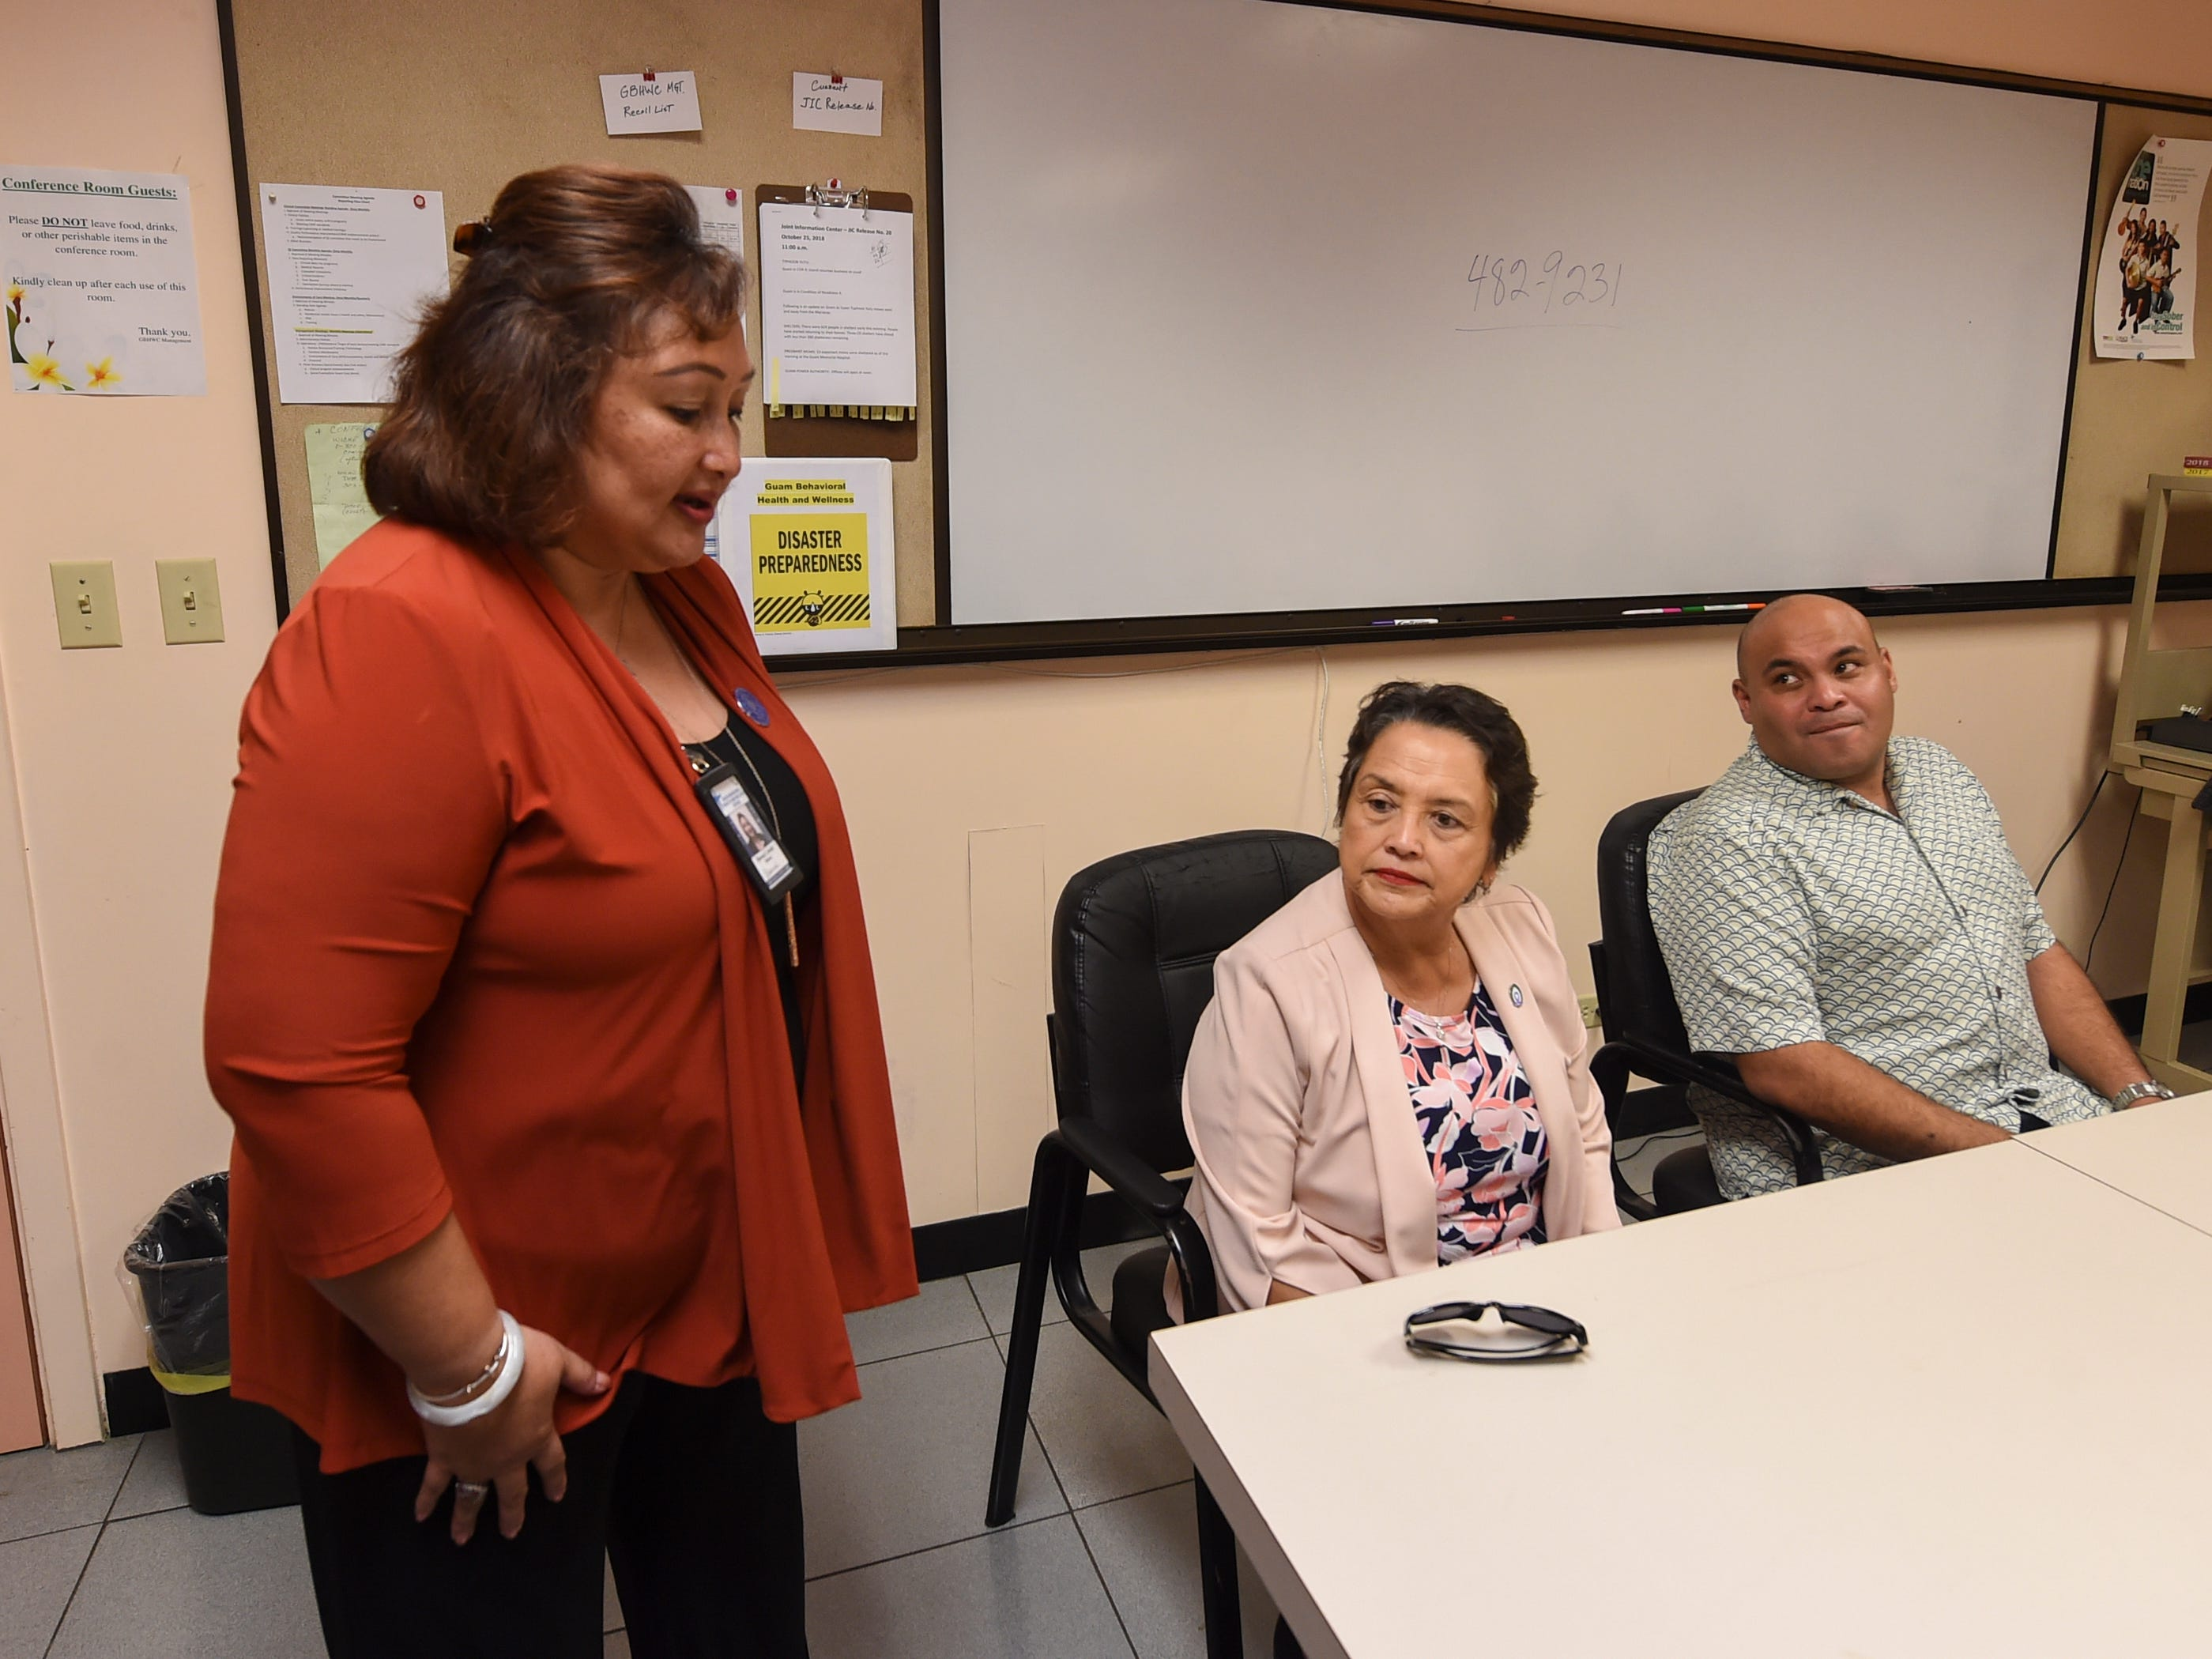 Therese Arriola, left, the director of the Guam Behavioral Health and Wellness Center, speaks during a meeting with Gov. Lou Leon Guerrero and Lt. Gov Josh Tenorio at their facility's conference room in Tamuning on Feb. 12, 2019.